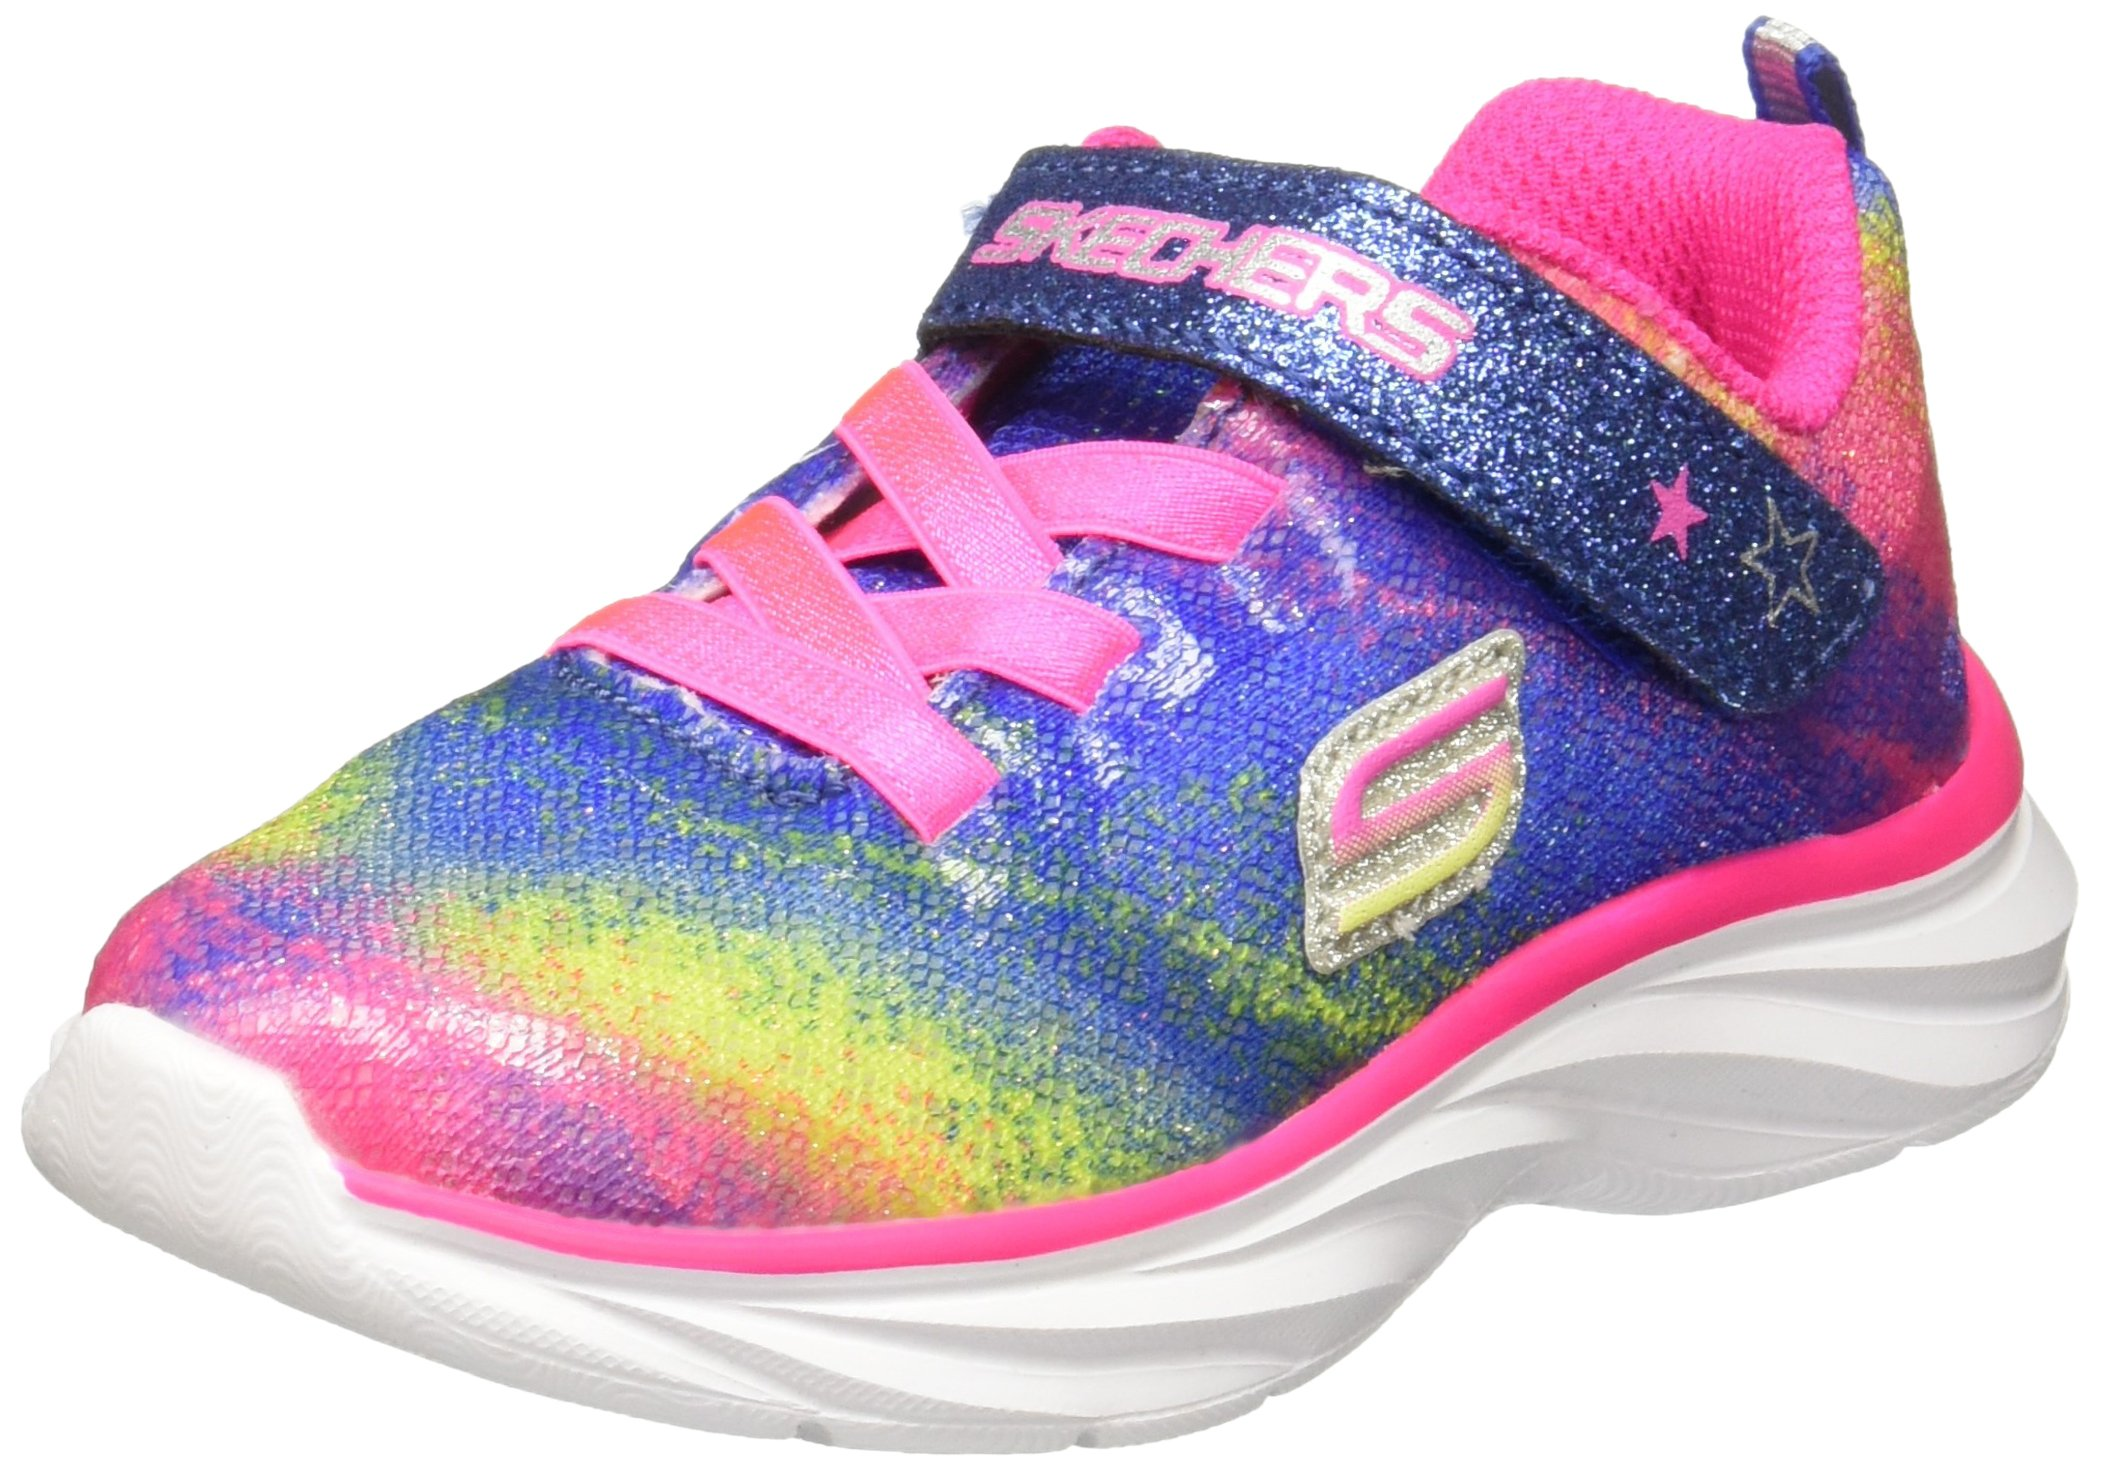 Skechers Pepsters-Bling Brite Girls Infant-Toddler-Youth Sneaker 5 M US Toddler Multi-Pink